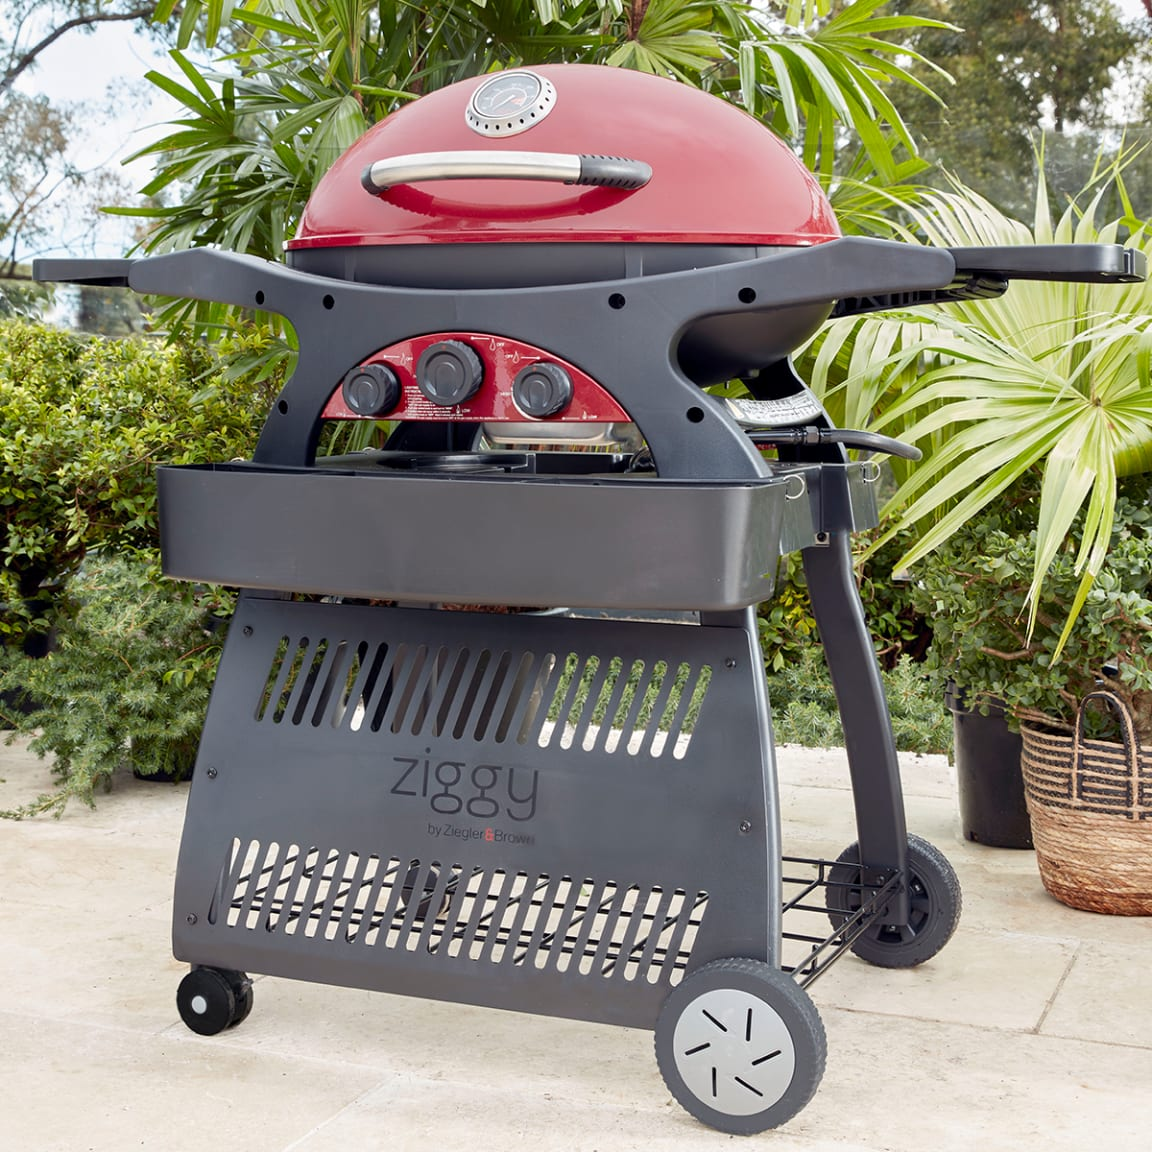 Barbeques Galore: Barbeque buying guide